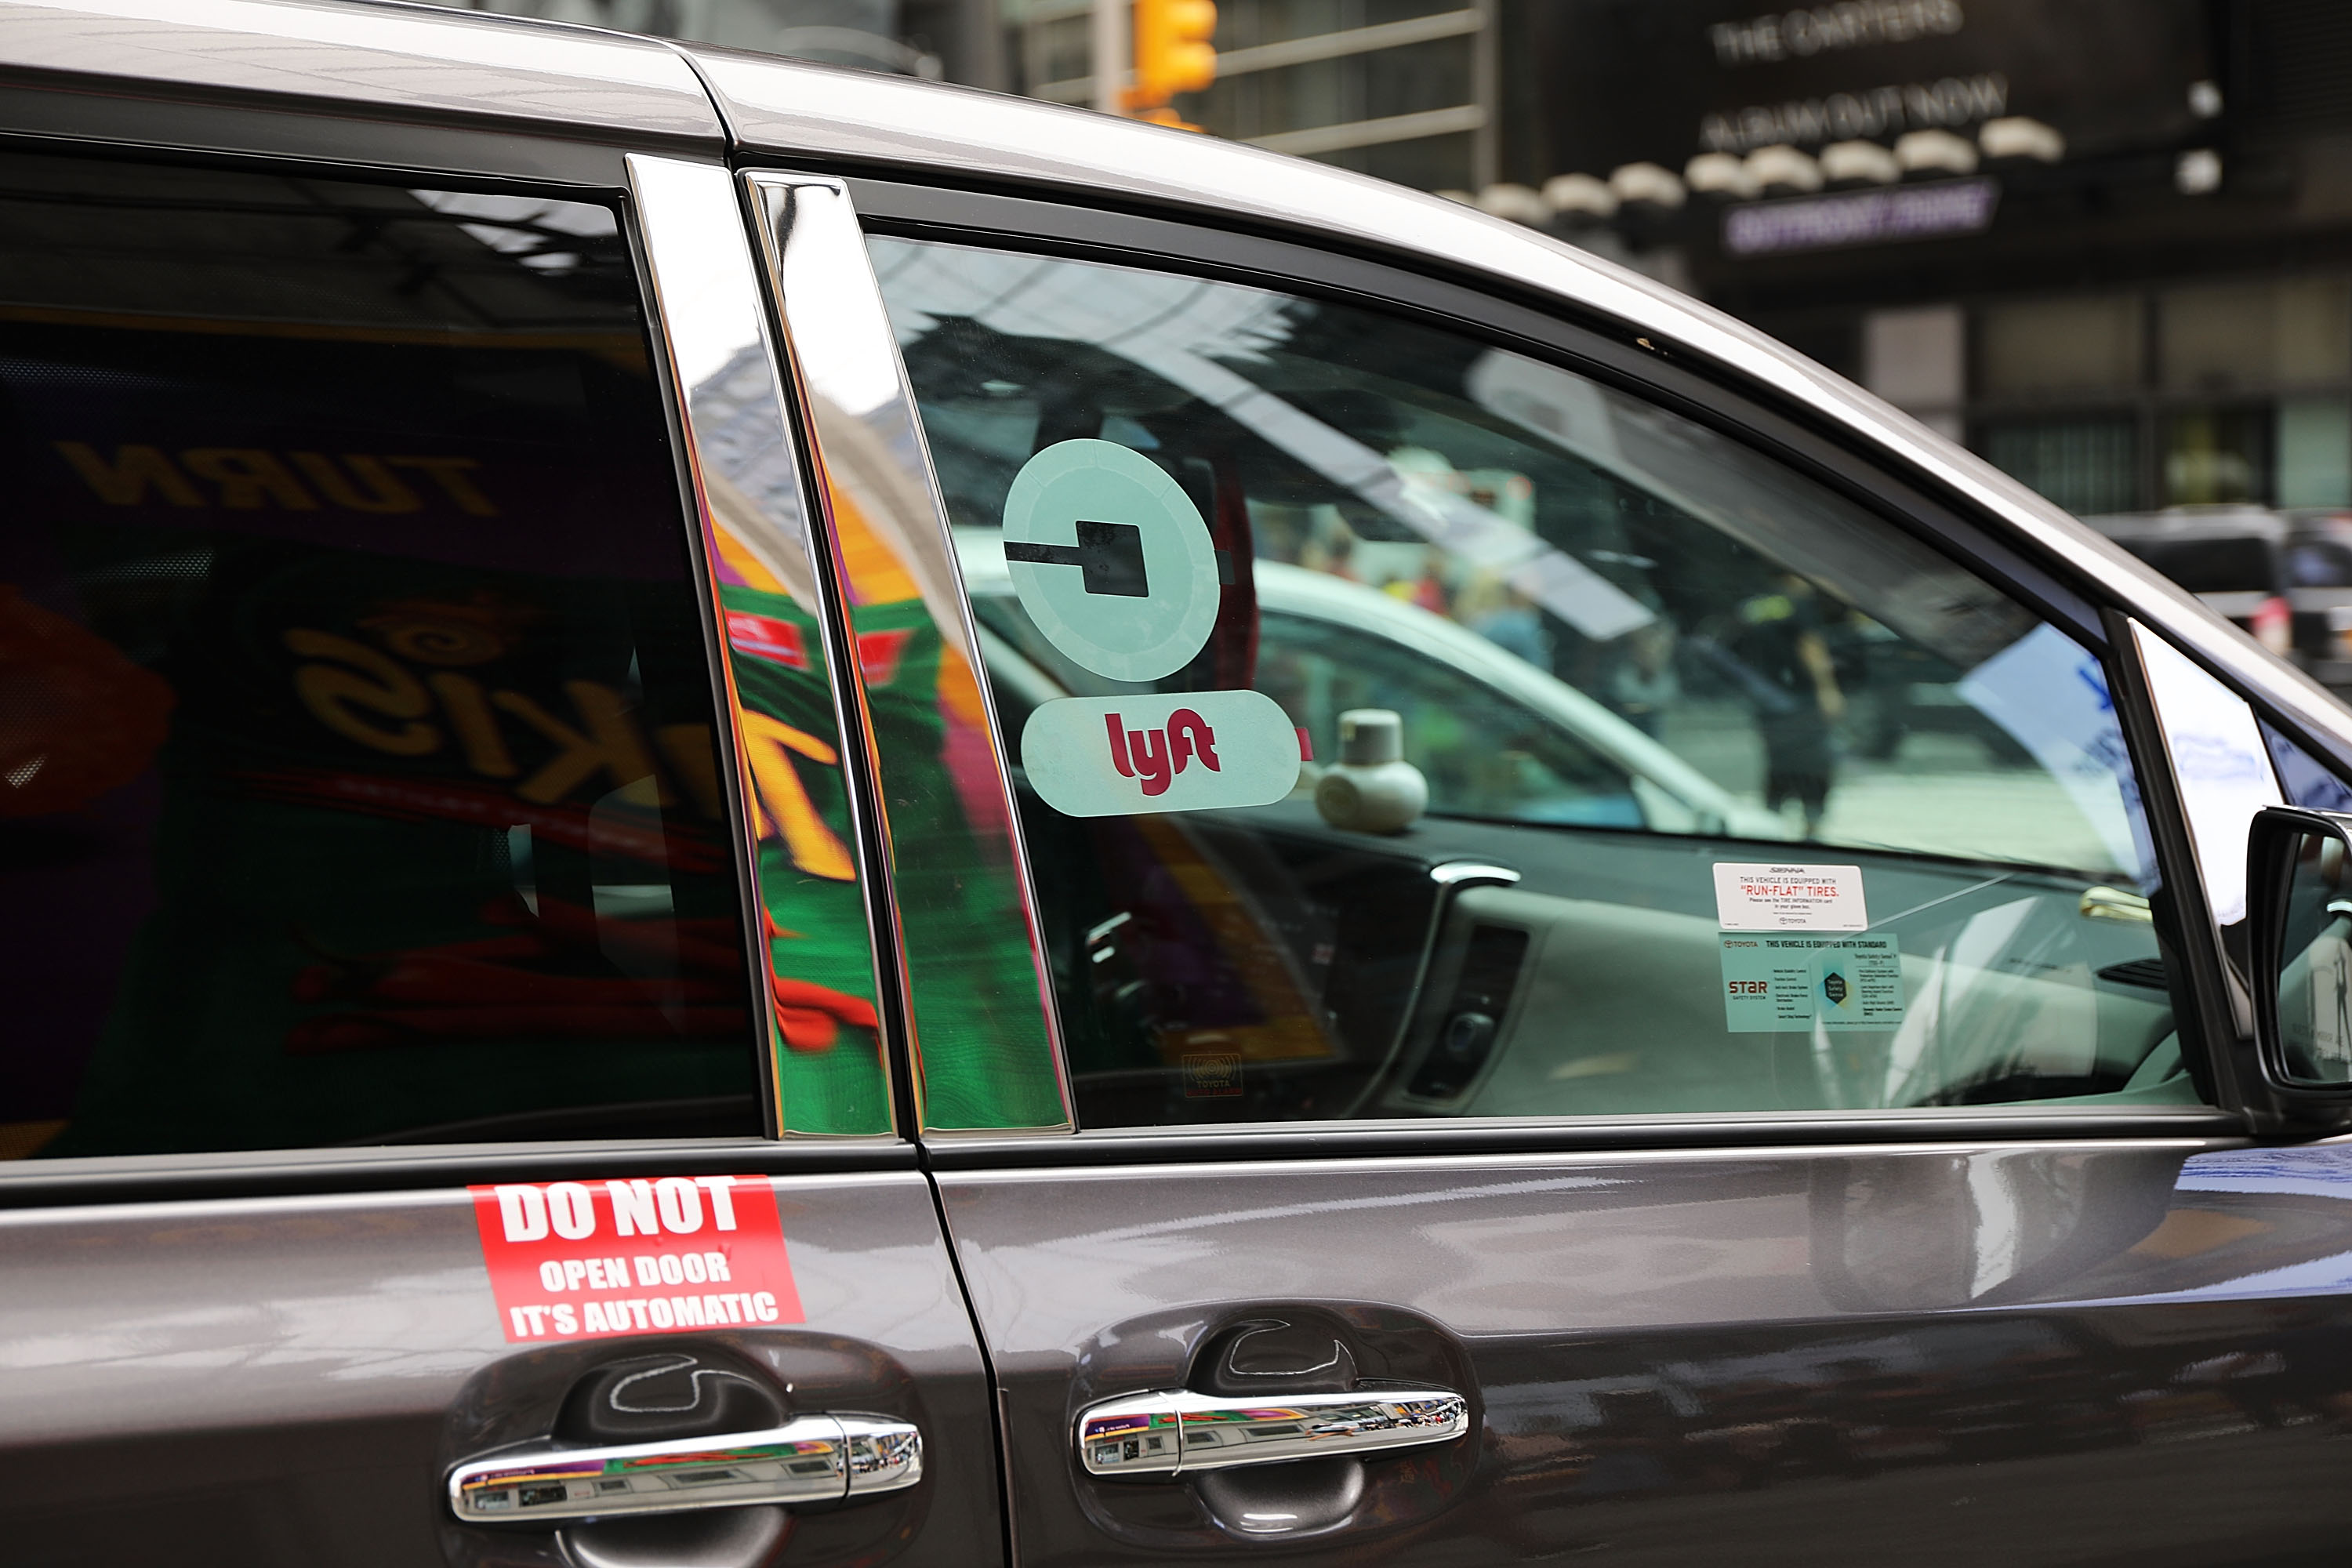 Ride-hailing car in NYC with both Uber and Lyft logos